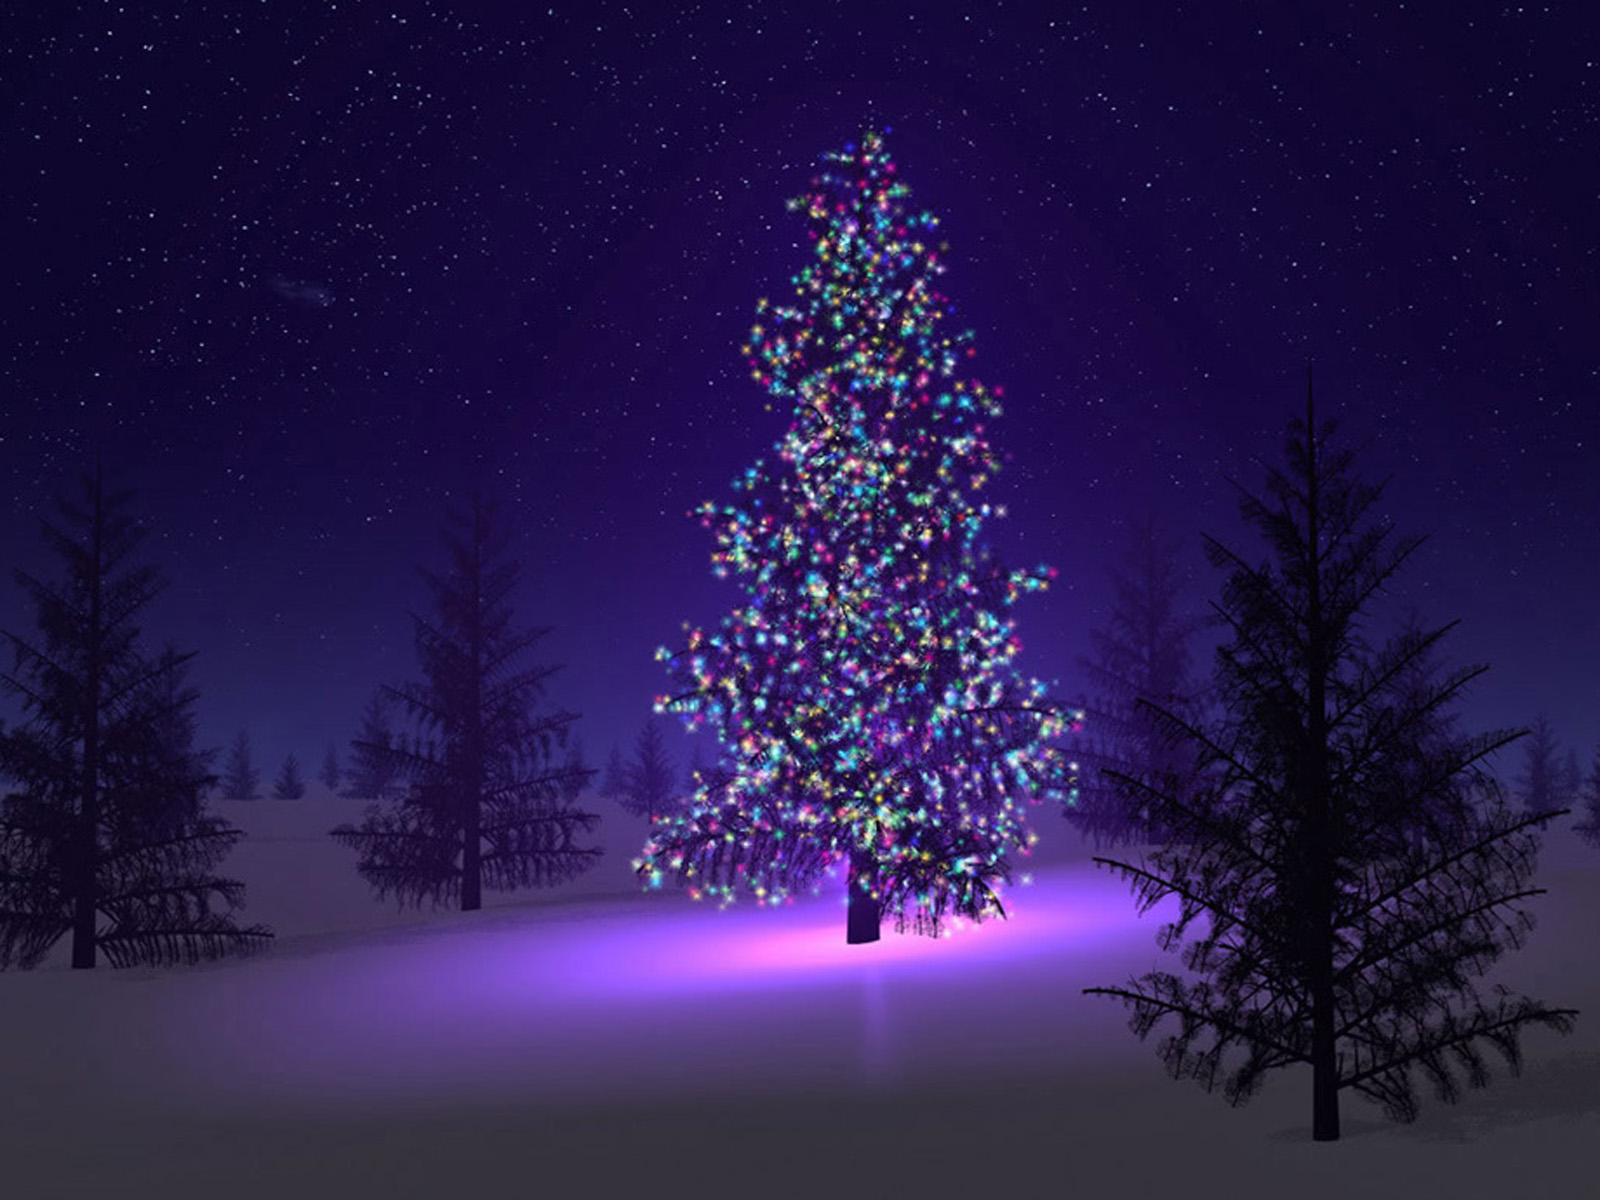 wallpaper Christmas Trees Wallpapers 1600x1200